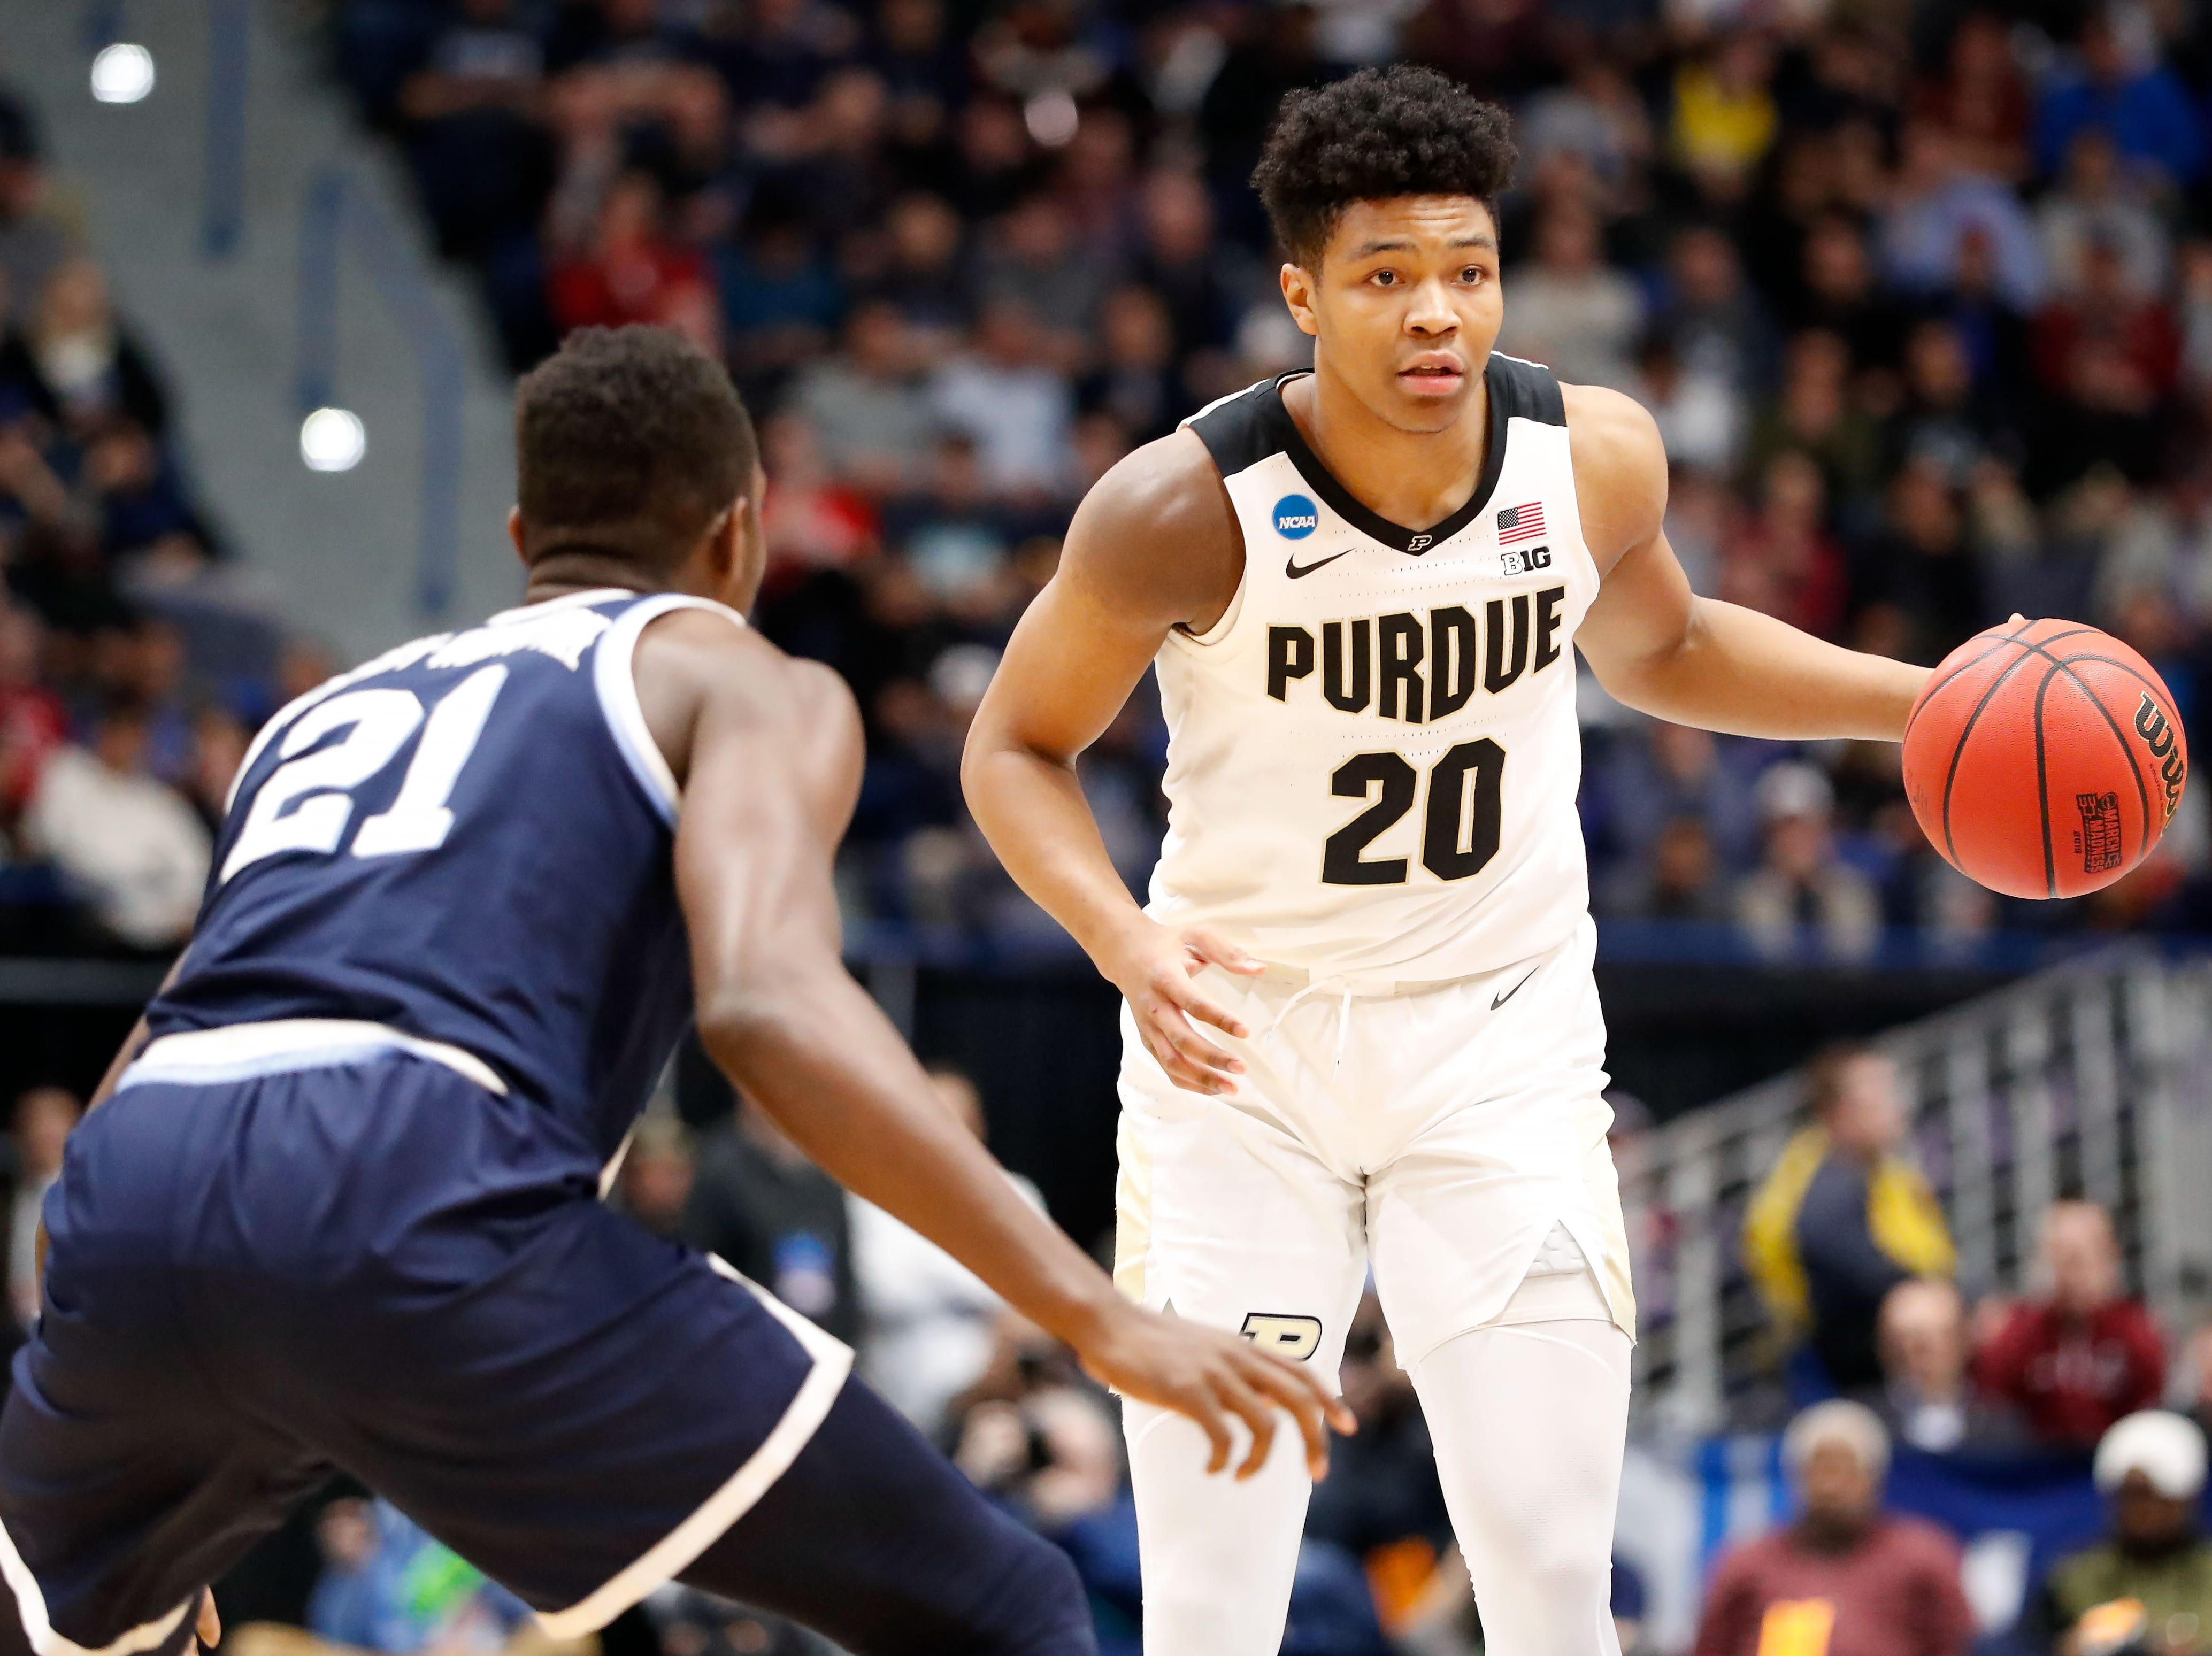 Mar 23, 2019; Hartford, CT, USA; Purdue Boilermakers guard Nojel Eastern (20) dribbles the ball around Villanova Wildcats forward Dhamir Cosby-Roundtree (21) during the first half of a game in the second round of the 2019 NCAA Tournament at XL Center. Mandatory Credit: David Butler II-USA TODAY Sports